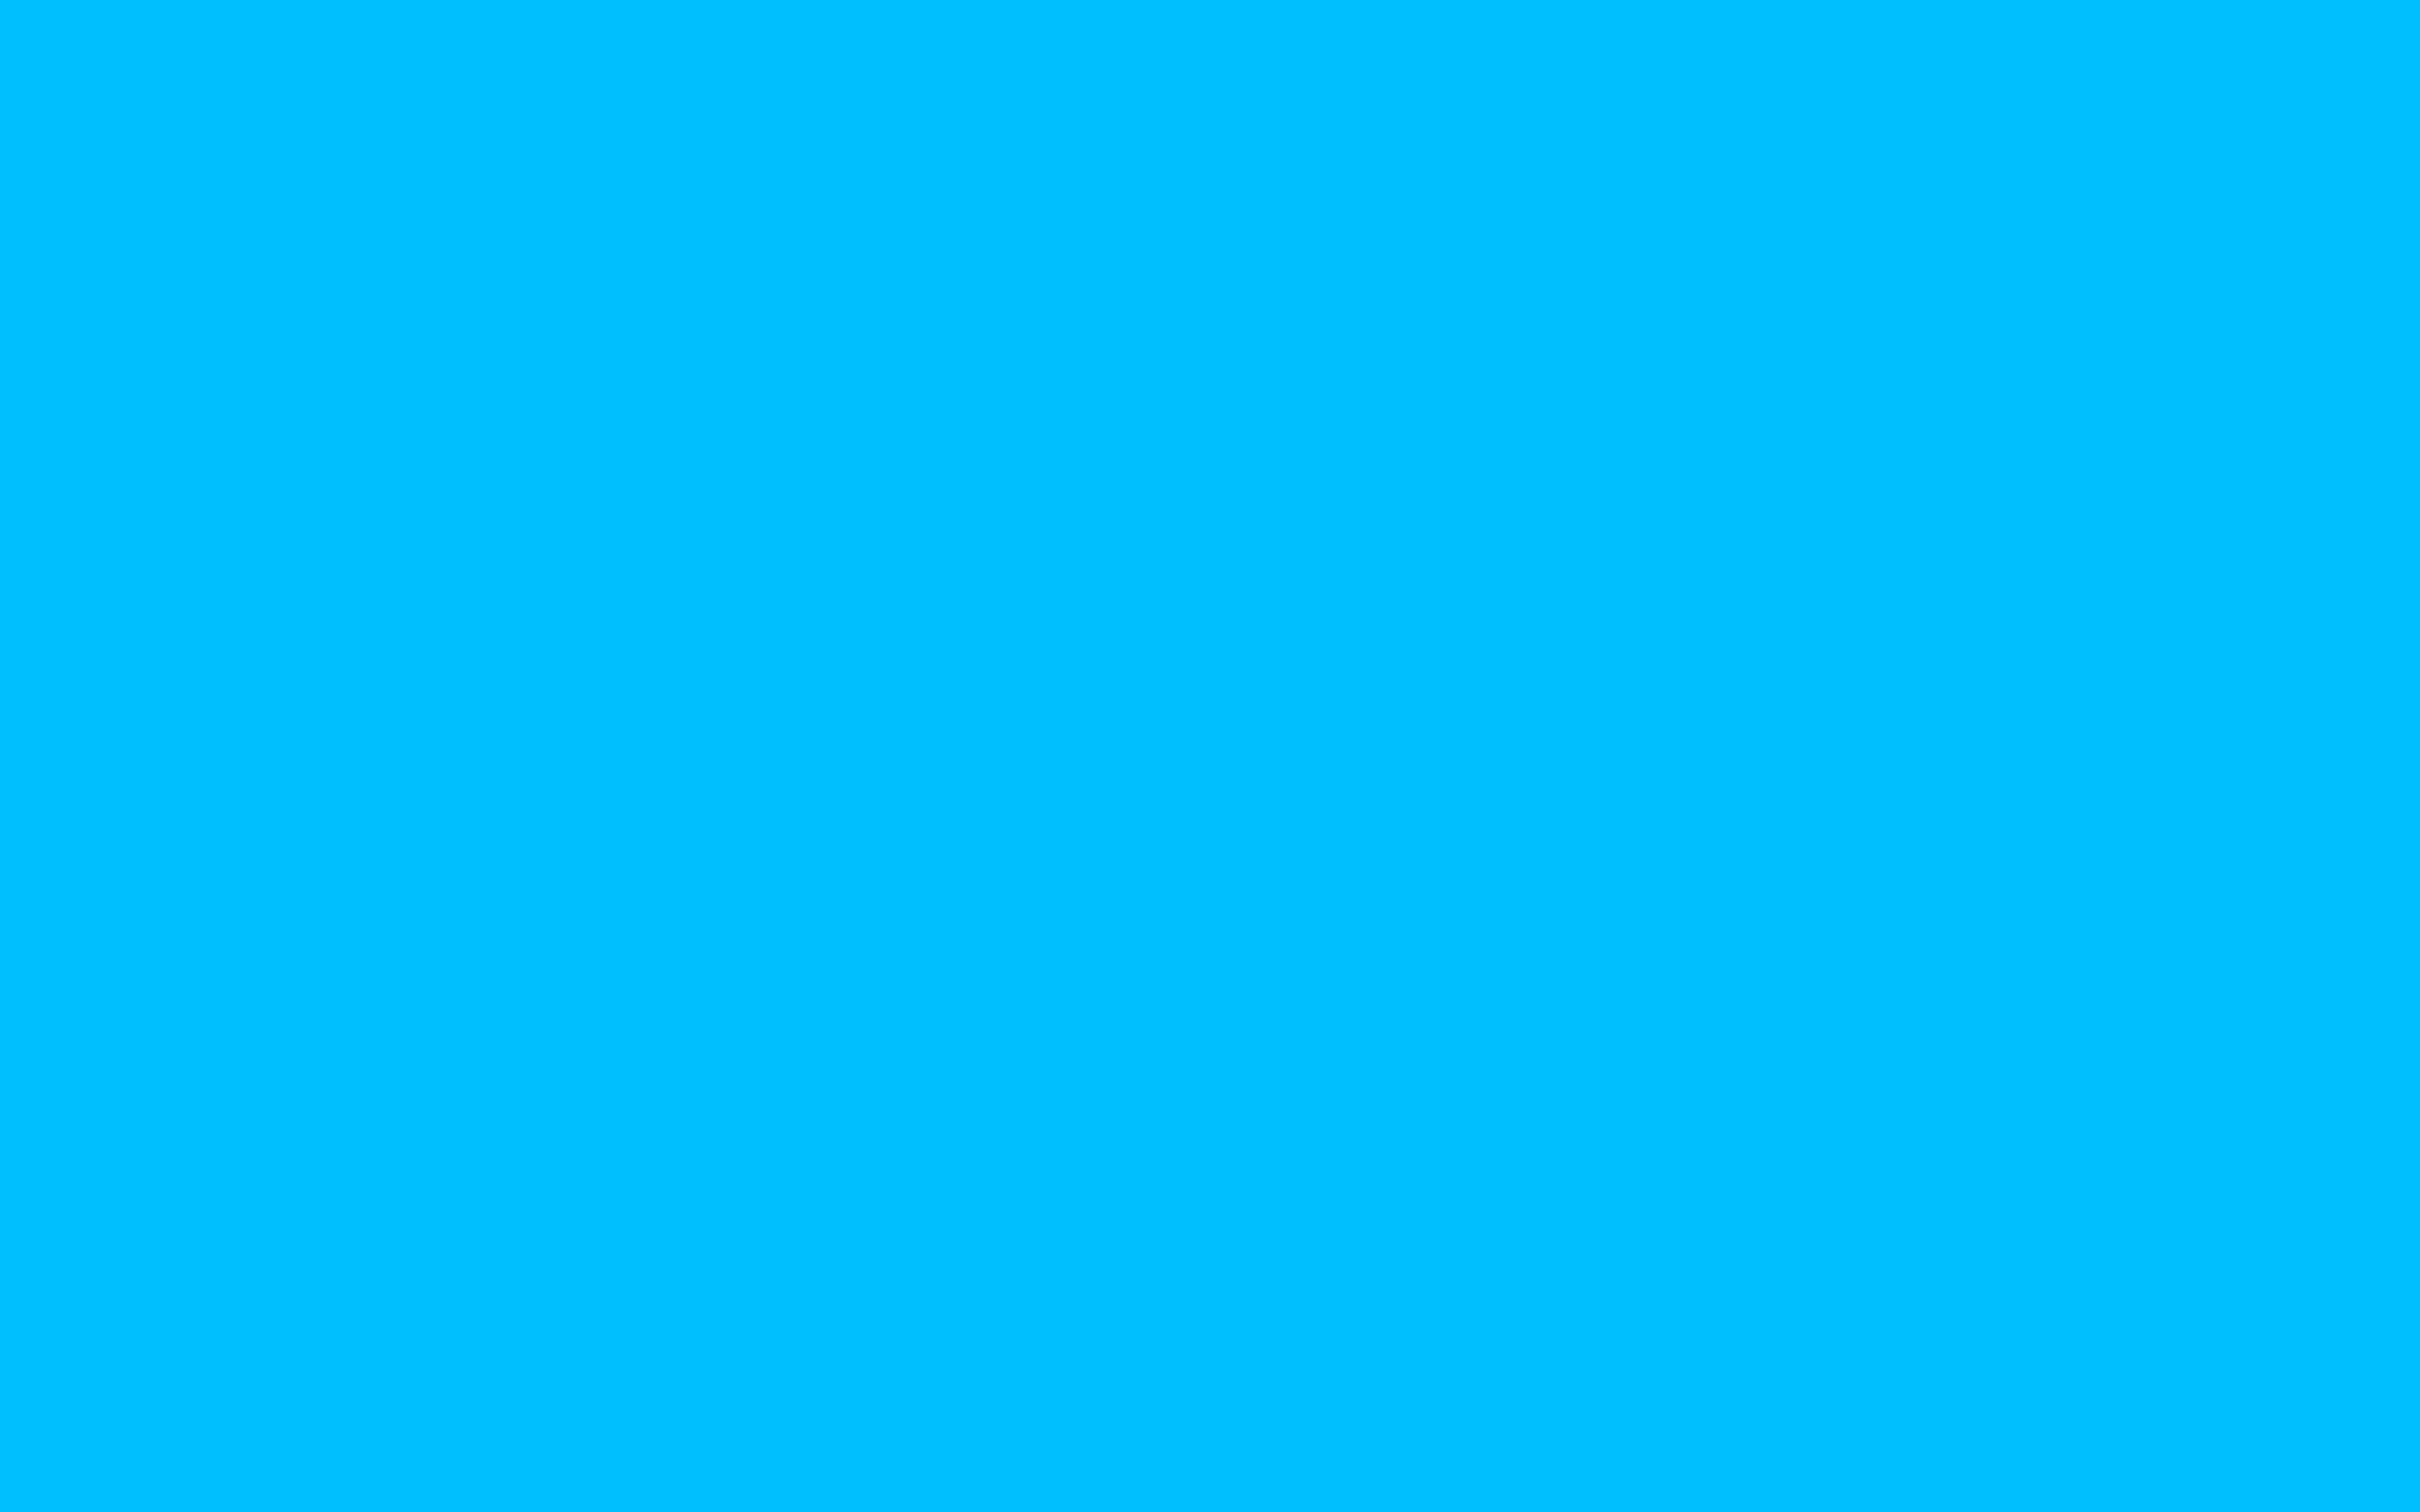 2560x1600 Deep Sky Blue Solid Color Background